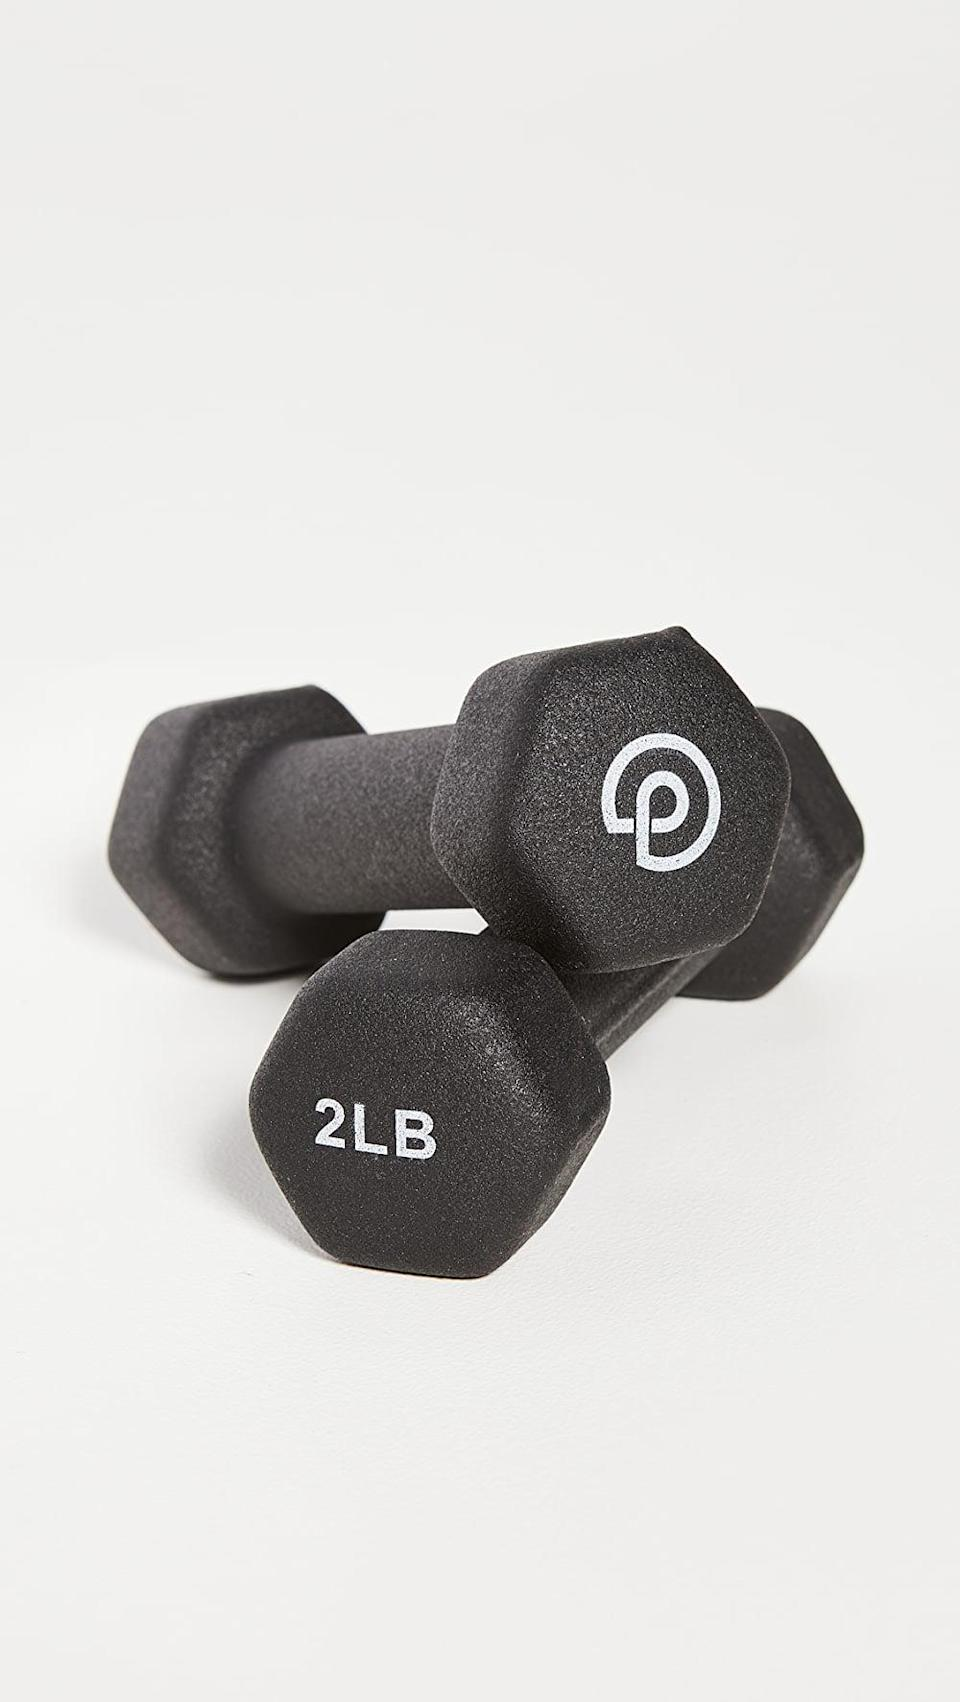 <p>When you want to get in a quick workout, reach for these <span>P.volve 2lb Hand Weights</span> ($10, originally $20 for two). They're a great addition to your home gym setup.</p>